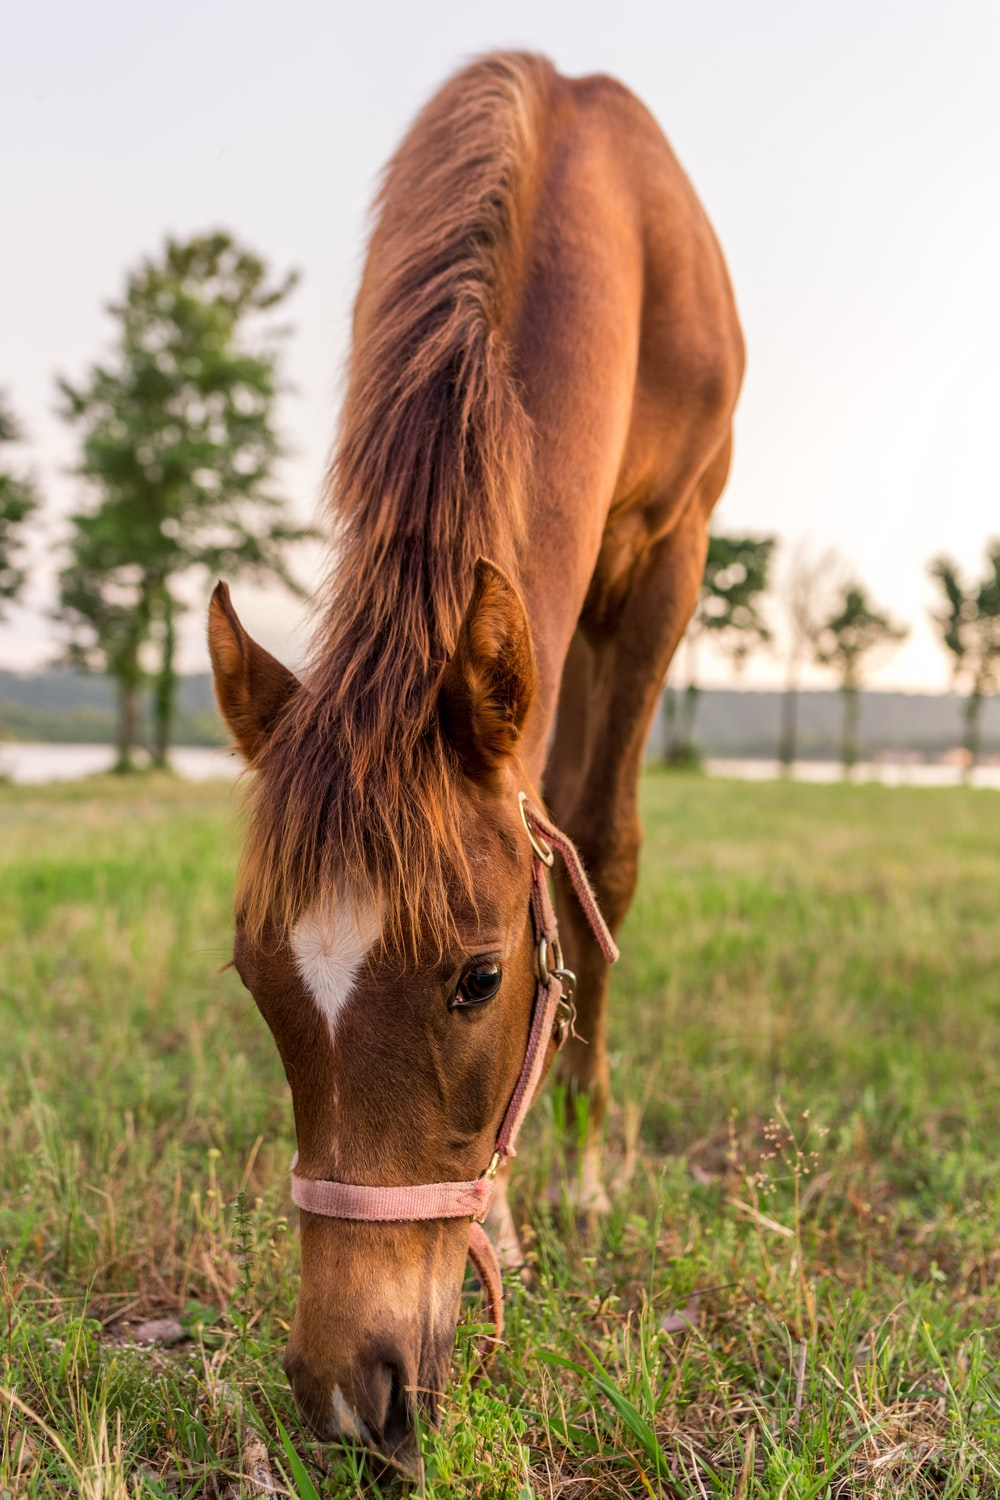 horse eating grass on field